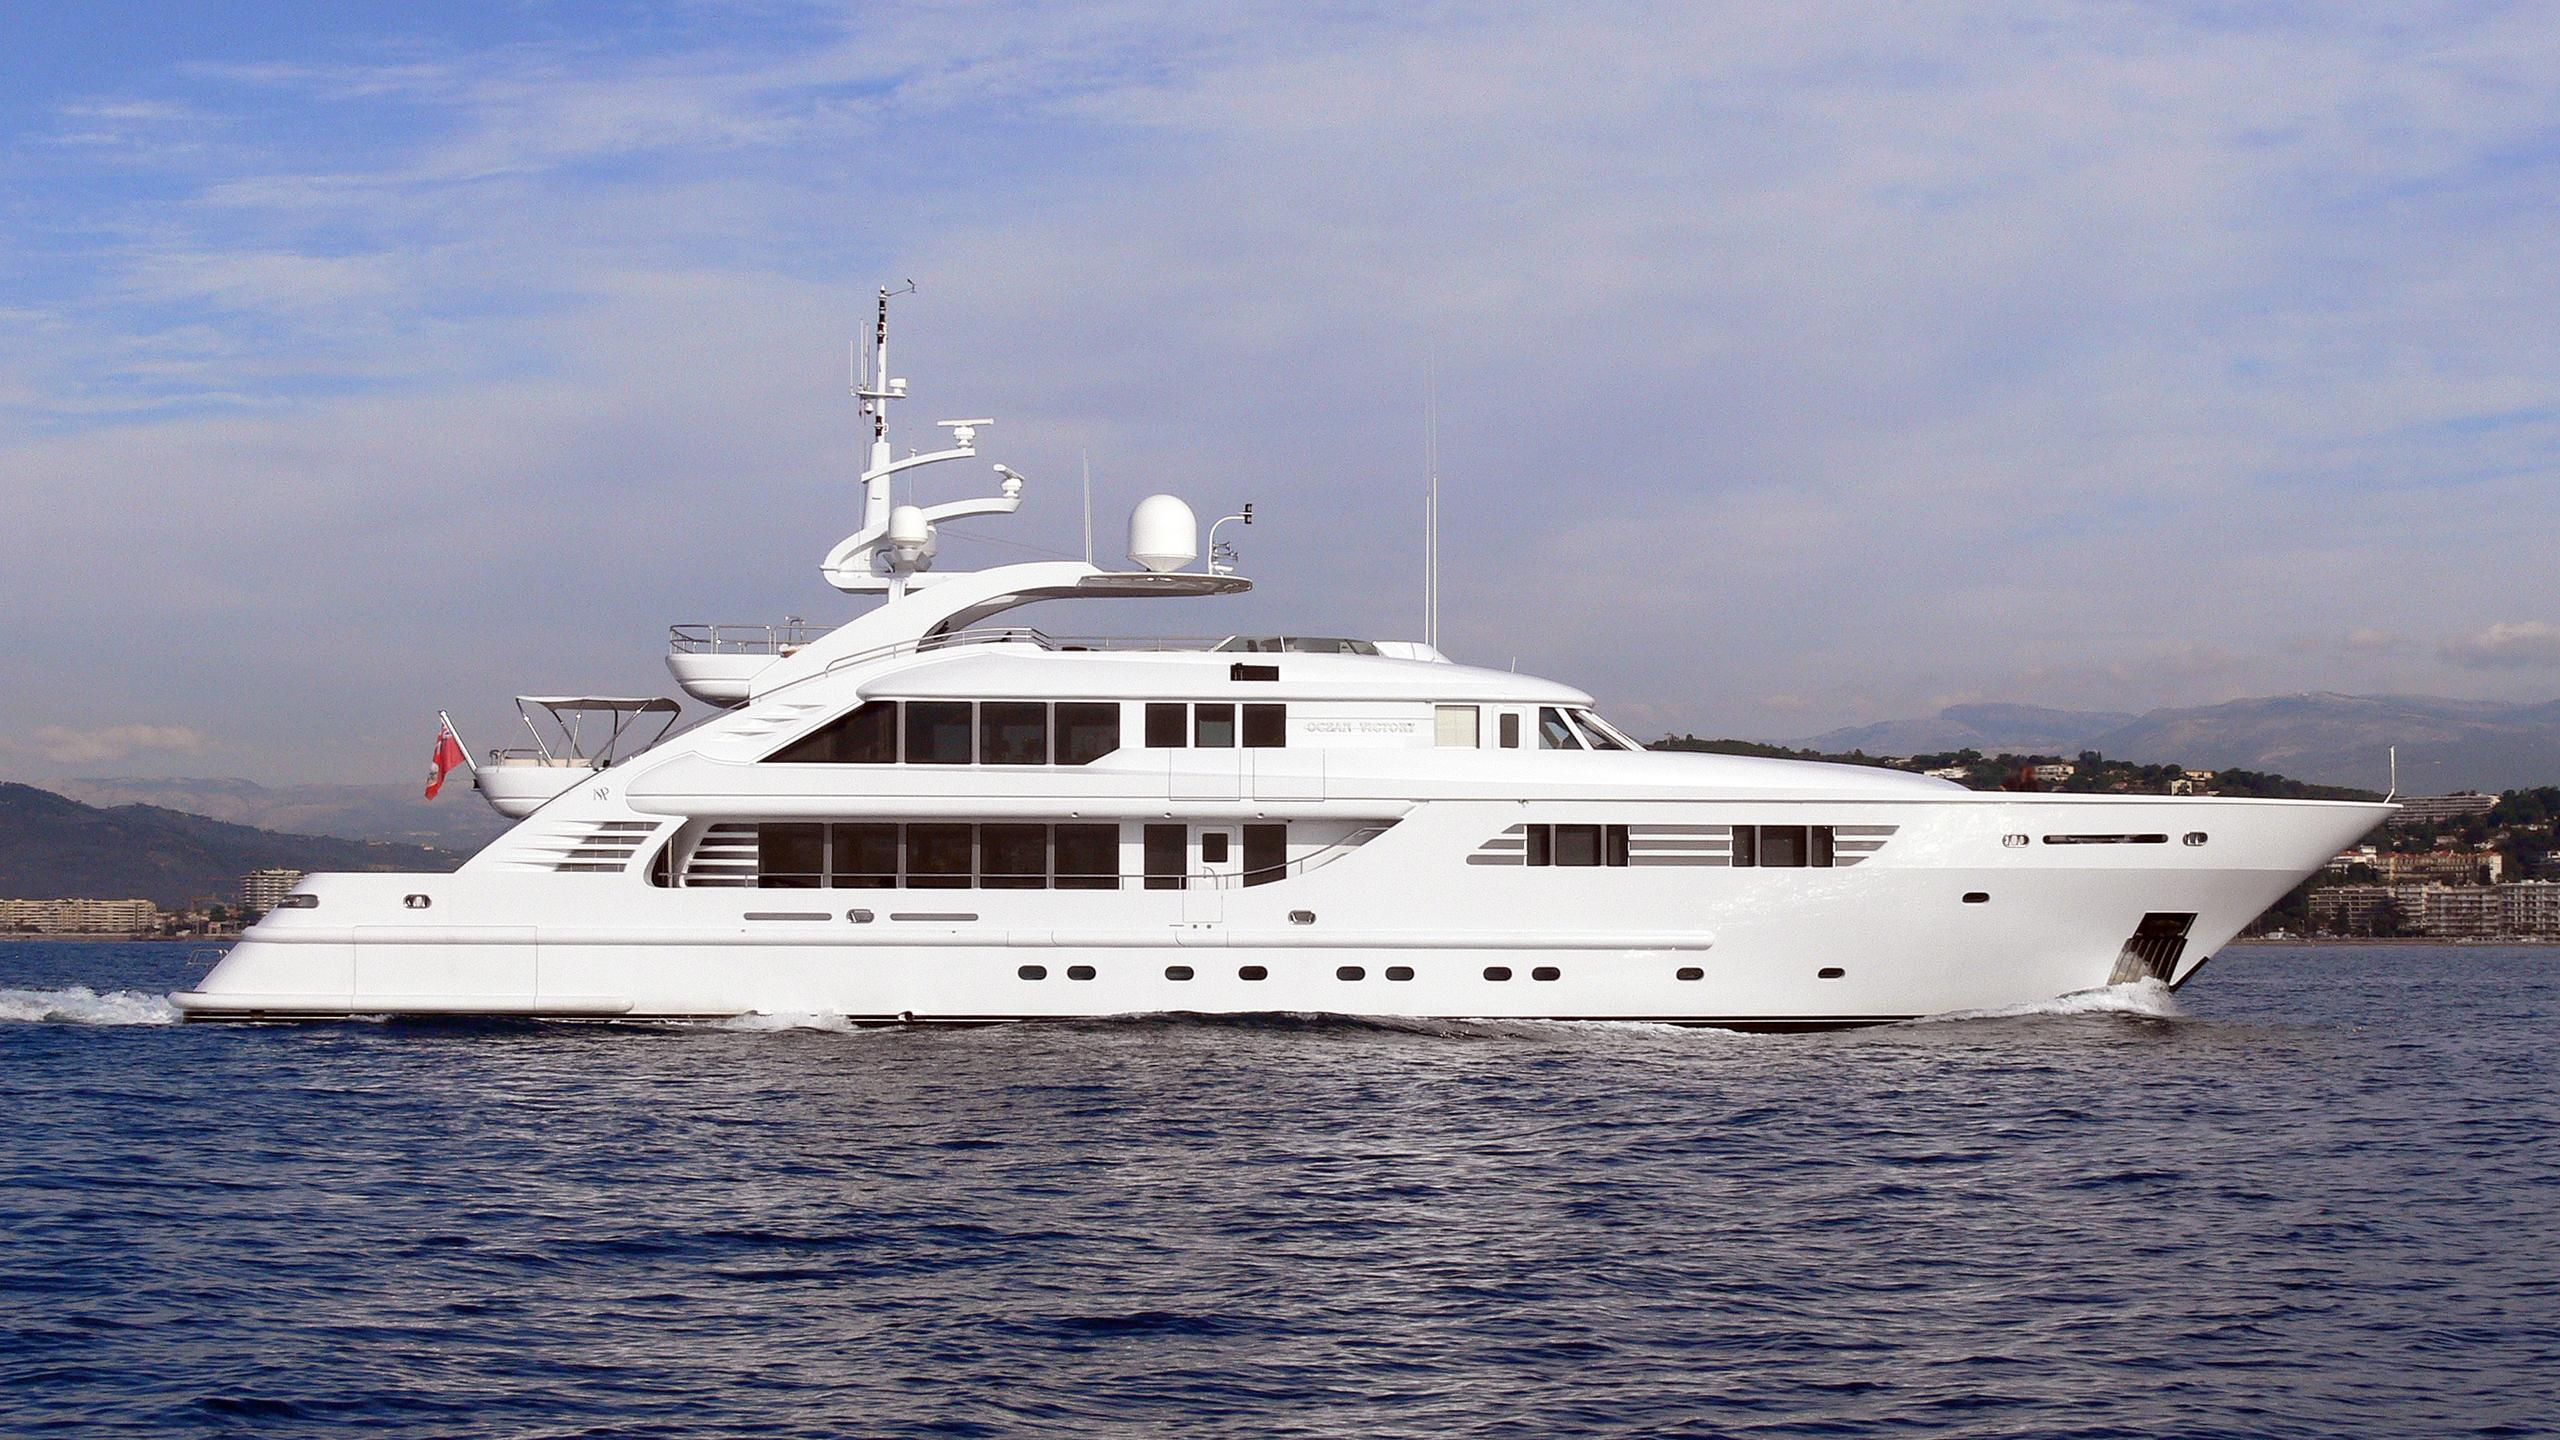 happy-days-motor-yacht-isa-470-2004-47m-profile